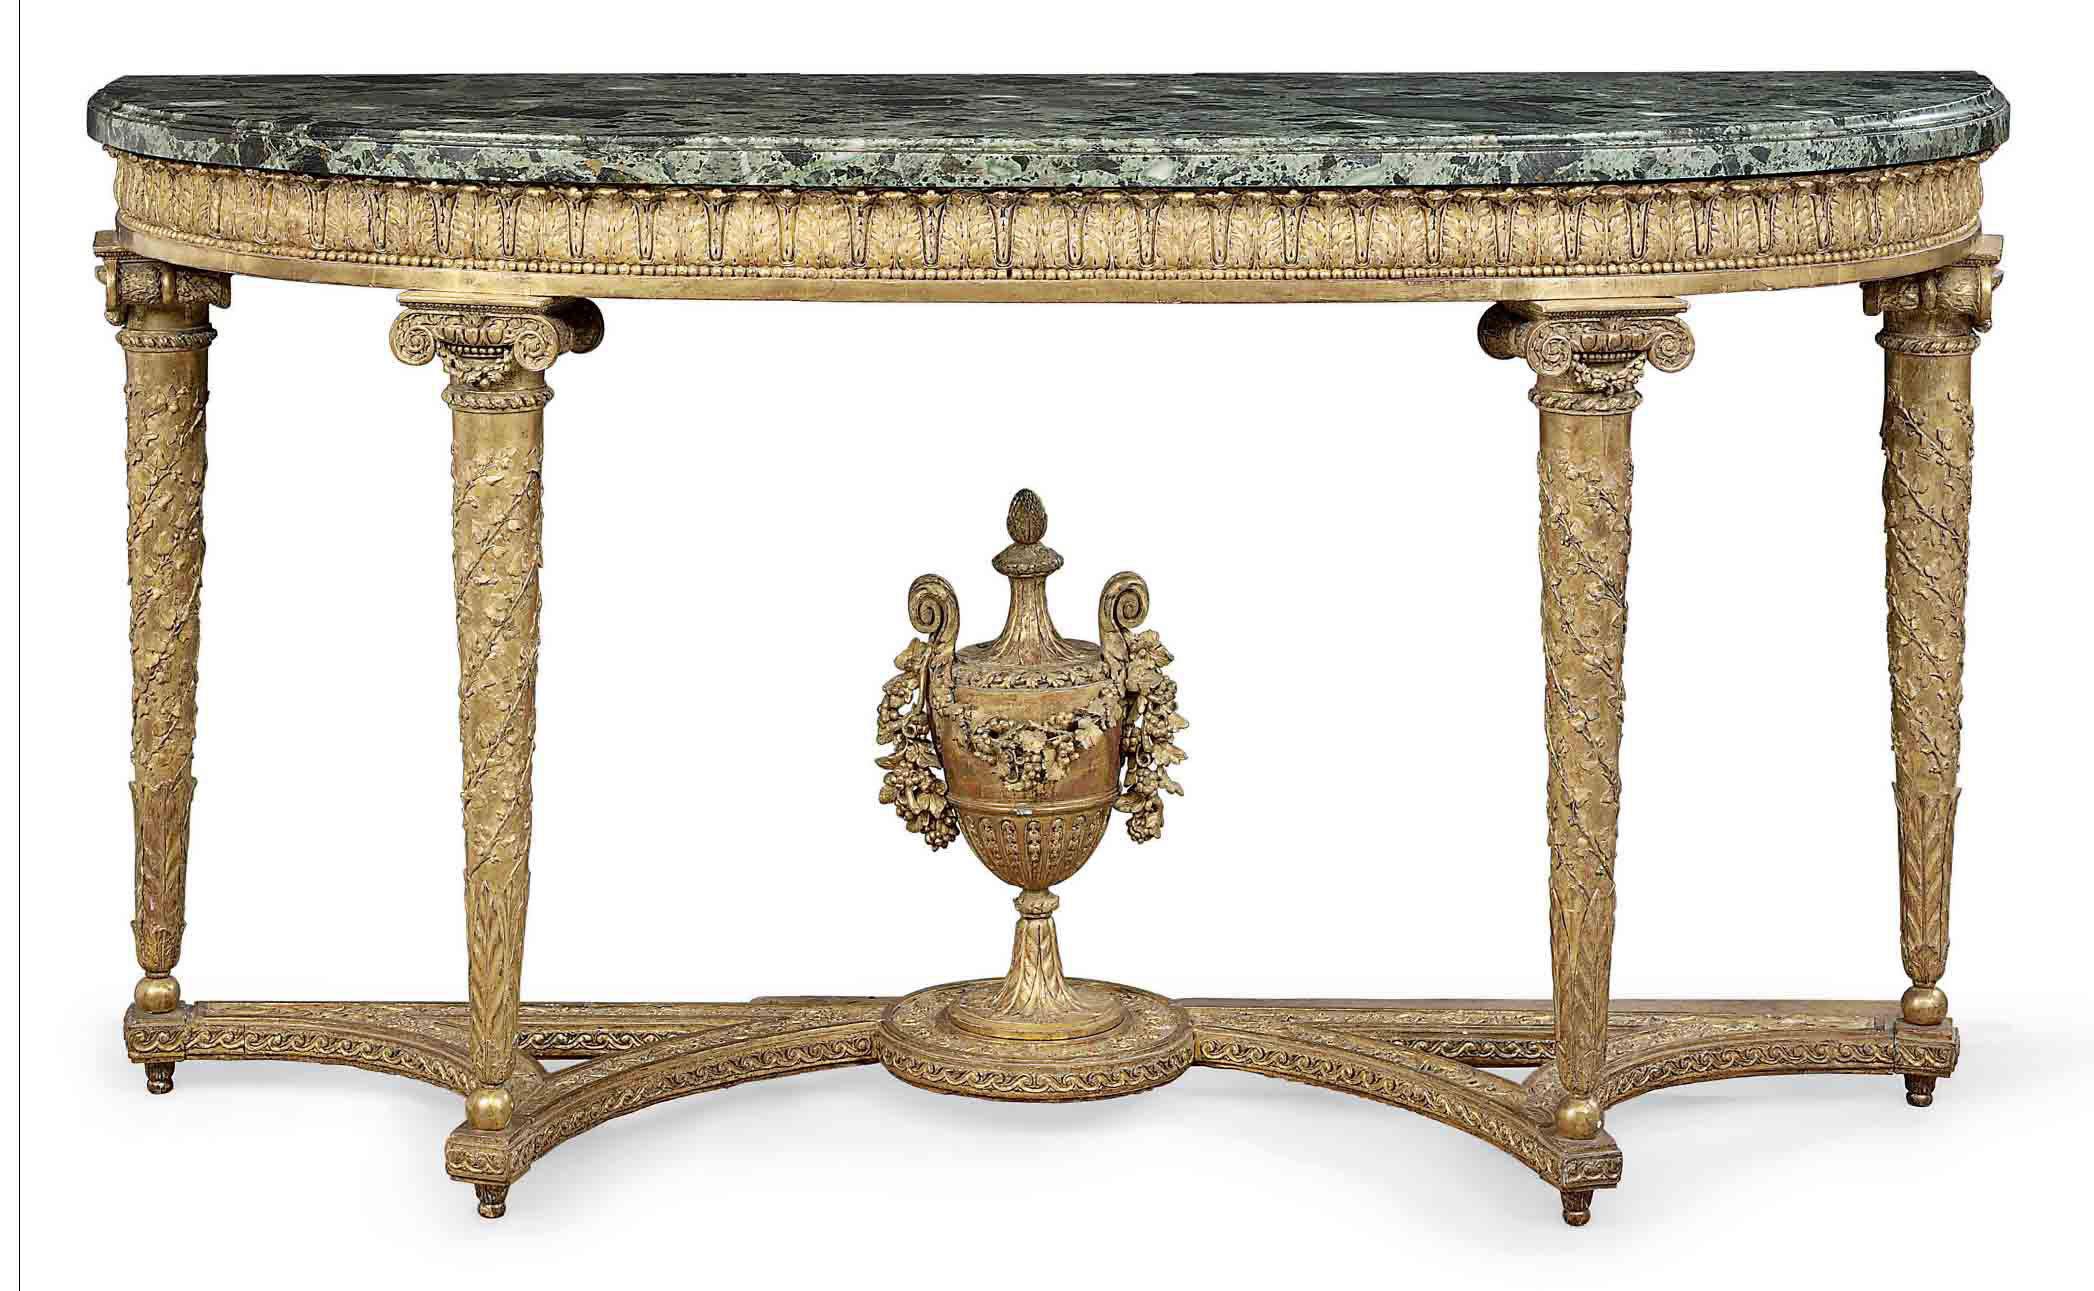 A ROYAL LOUIS XVI GILTWOOD CONSOLE TABLE